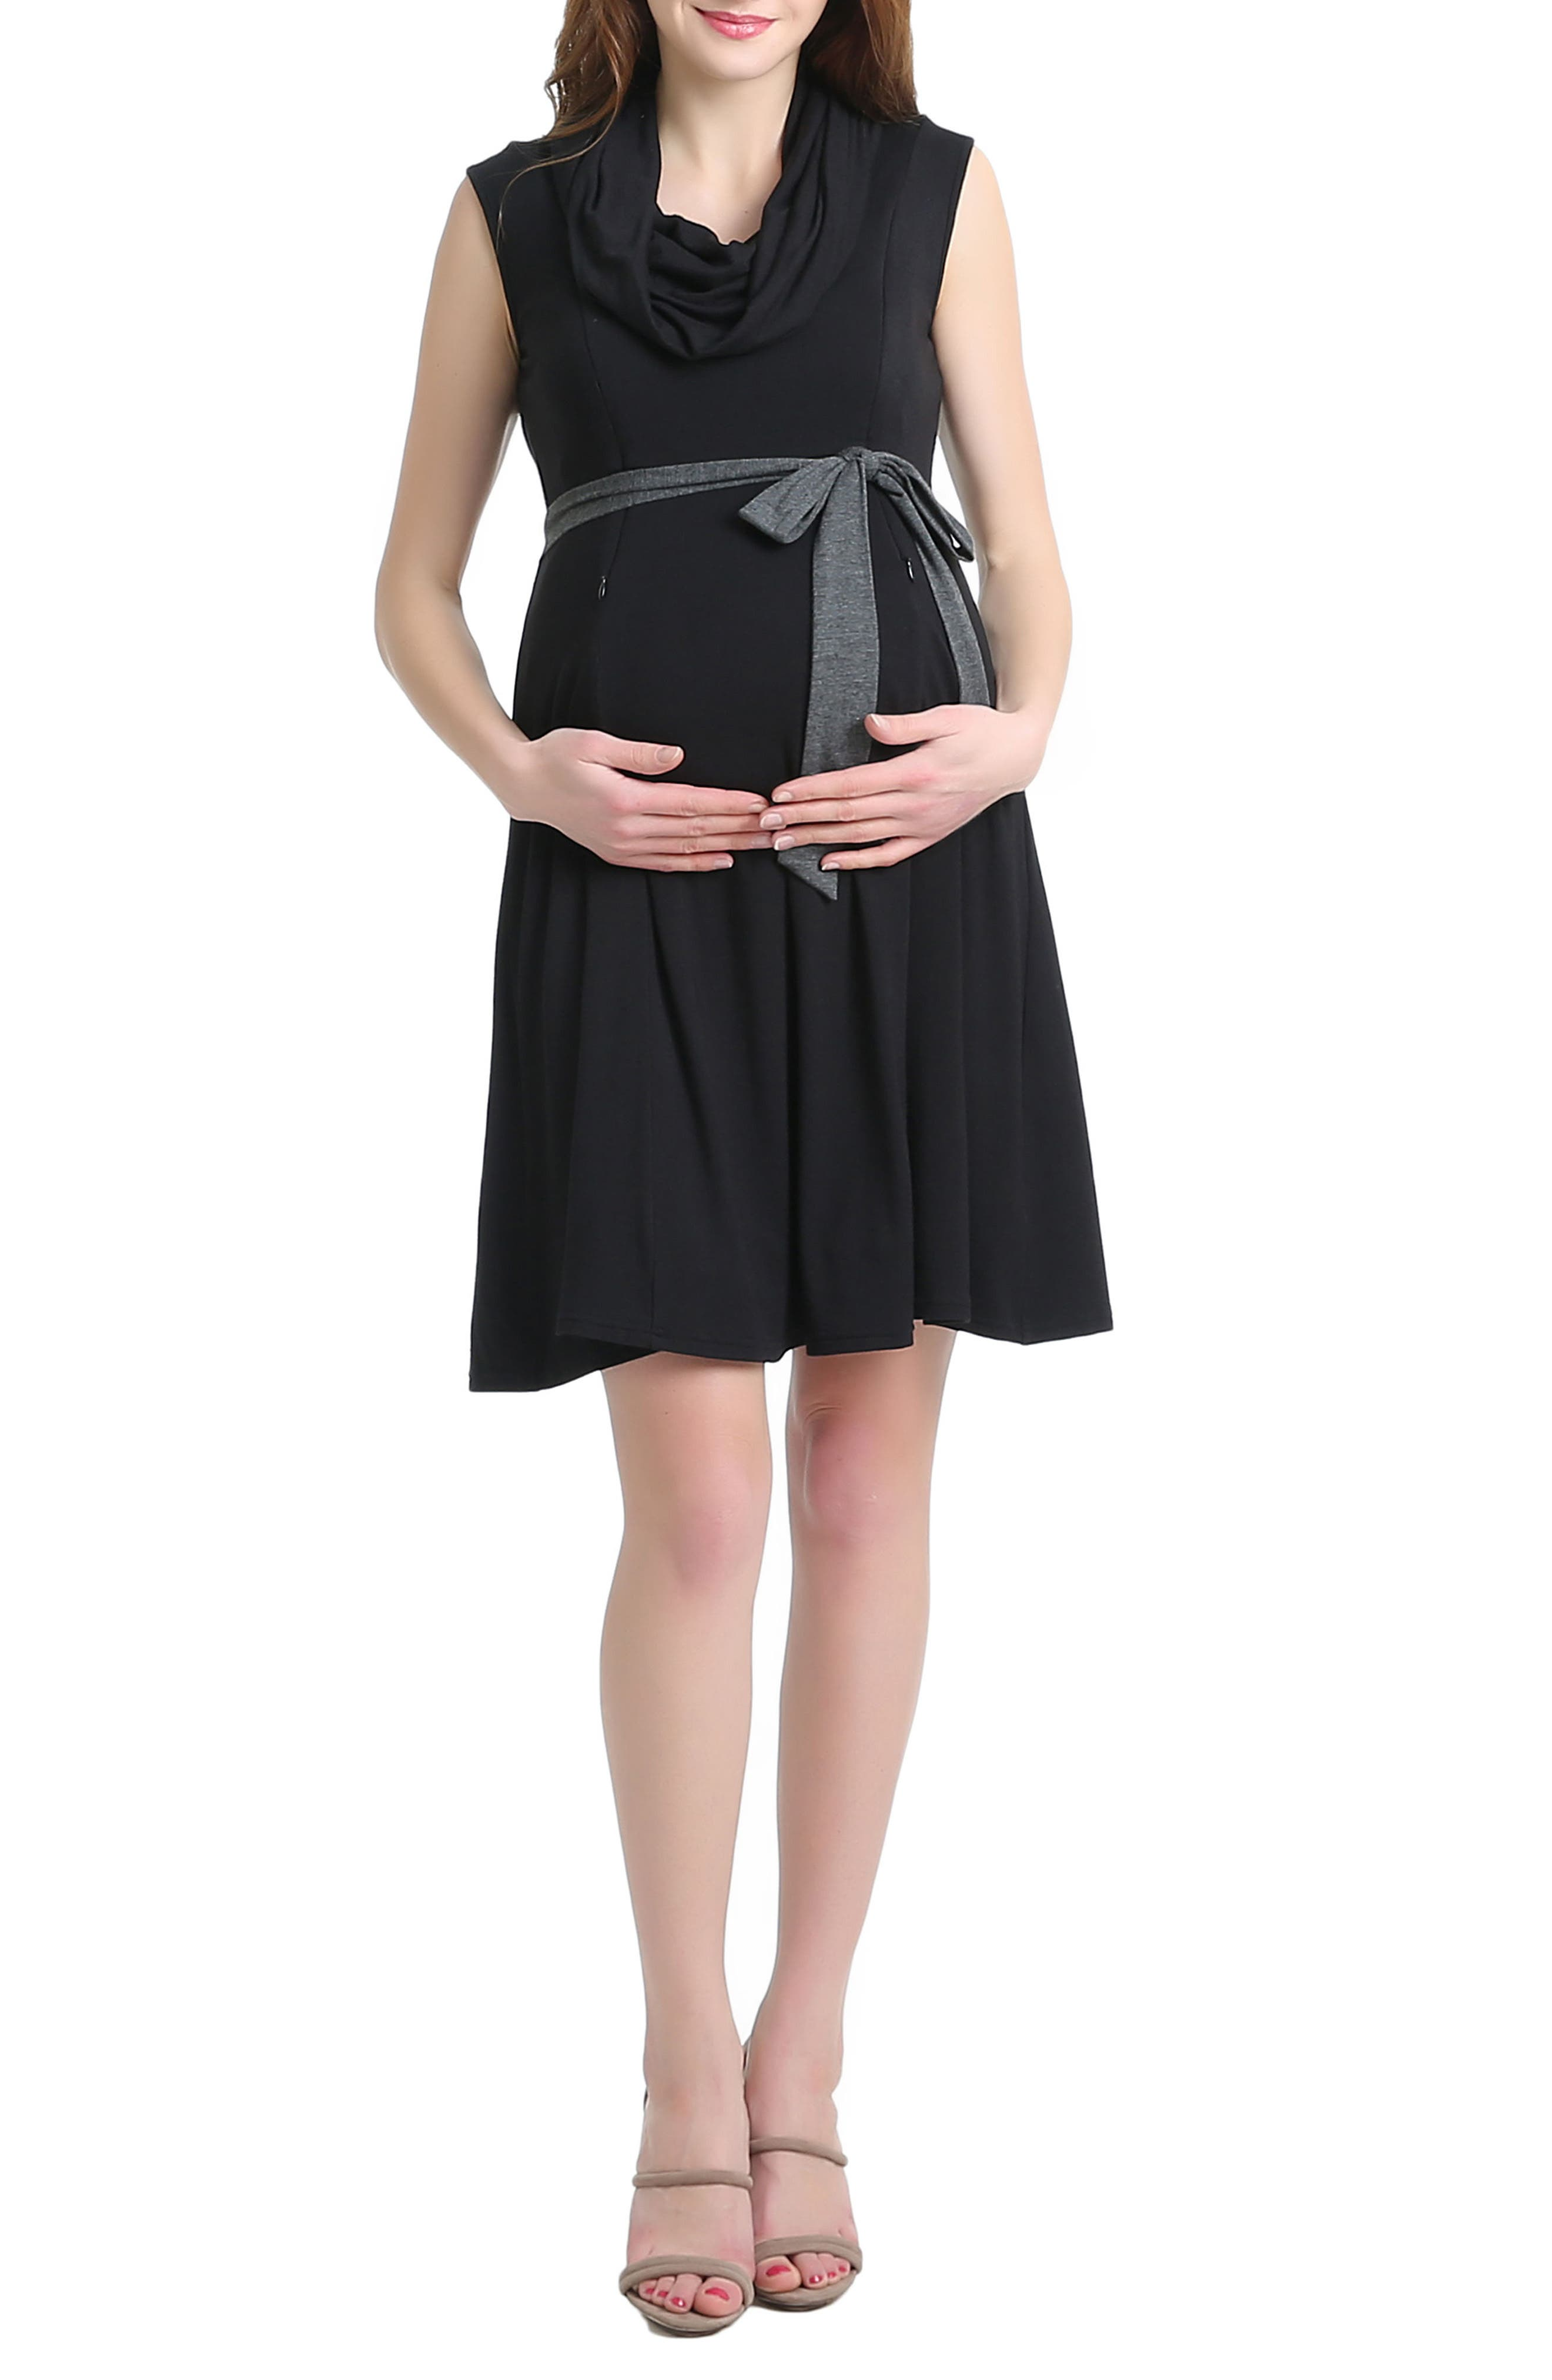 Megan Cowl Neck Maternity/Nursing Dress,                             Main thumbnail 1, color,                             001